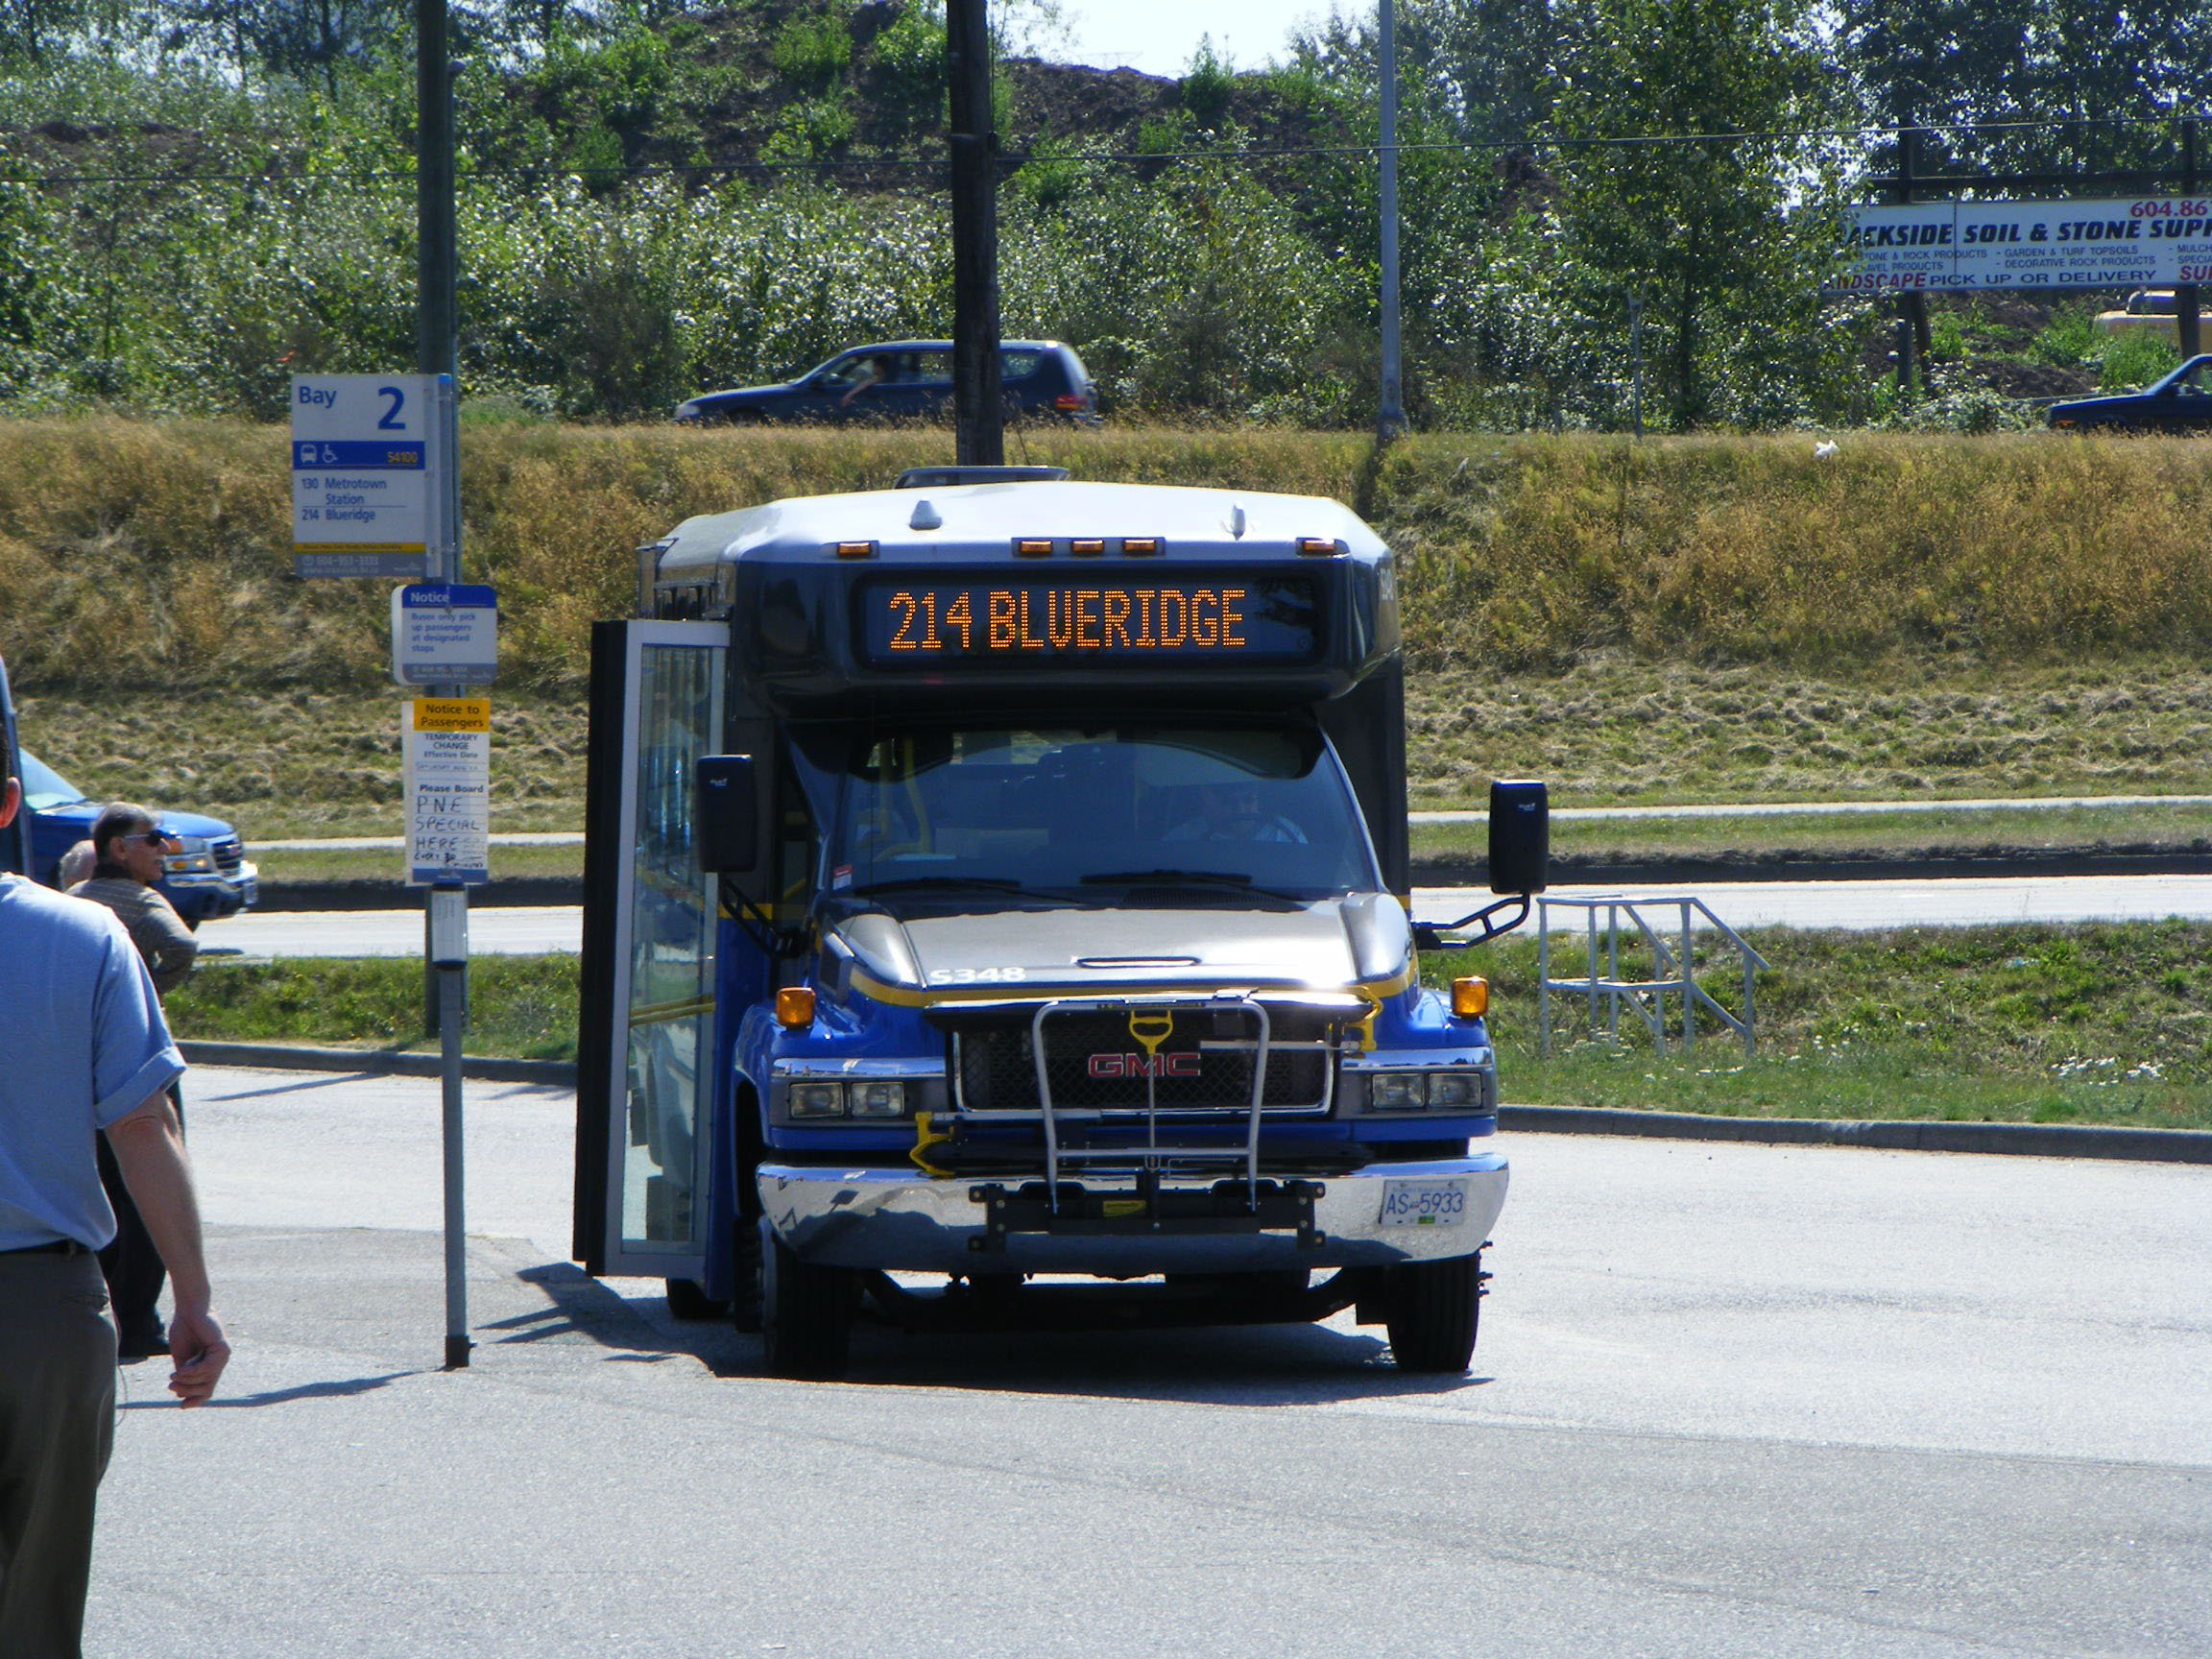 214 Bus Schedule Changes – Update